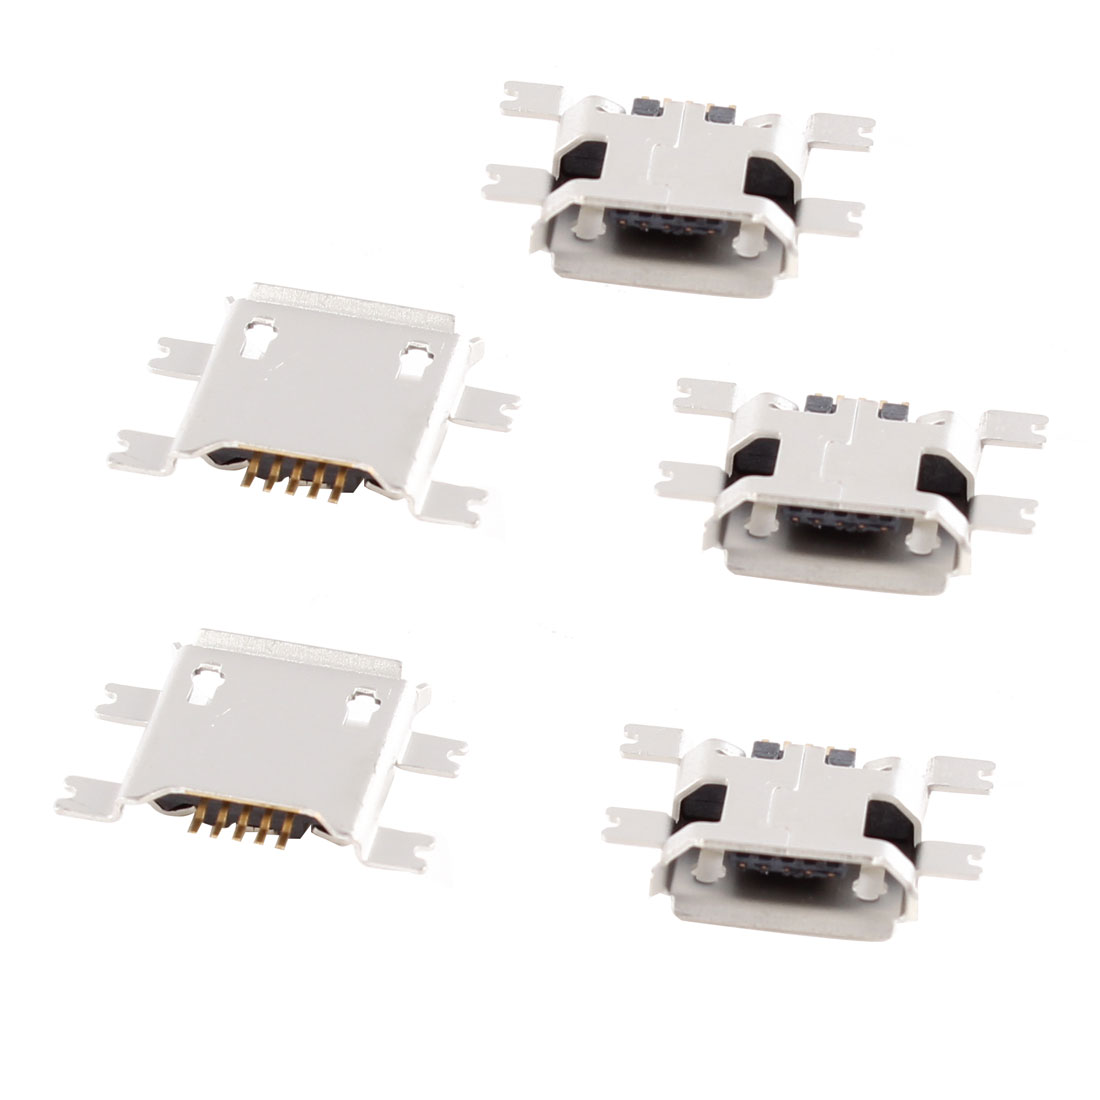 5 Pcs Micro USB Type B Female Socket 180 Degree 5-Pin SMD SMT Jack Connector